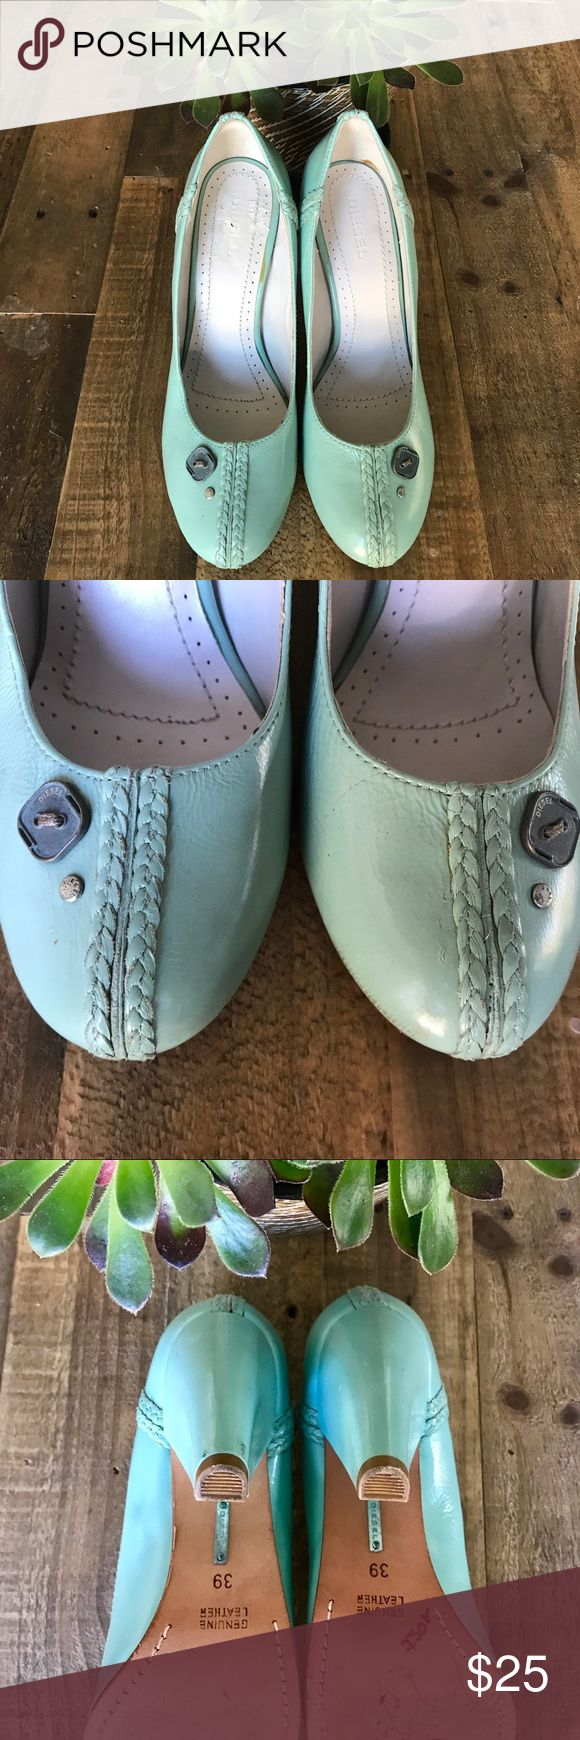 Vintage Diesel Mint Green Leather Button Heels 8 Super unique & cute pin-up style vintage (purchased ~ 20 yrs ago!) Diesel heels in a mint green! Genuine leather w/braided rope detail around the top & buttons on the toes. The shoes have a small kitten heel. Extremely well made. In good used condition with flaws from normal wear (pls see pics). Perfect with a sweet summer dress or skinnies!  Retro, Easter, '50s, party, brunch, spring, summer, birthday, party, dance, feminine, 50s. Diesel…